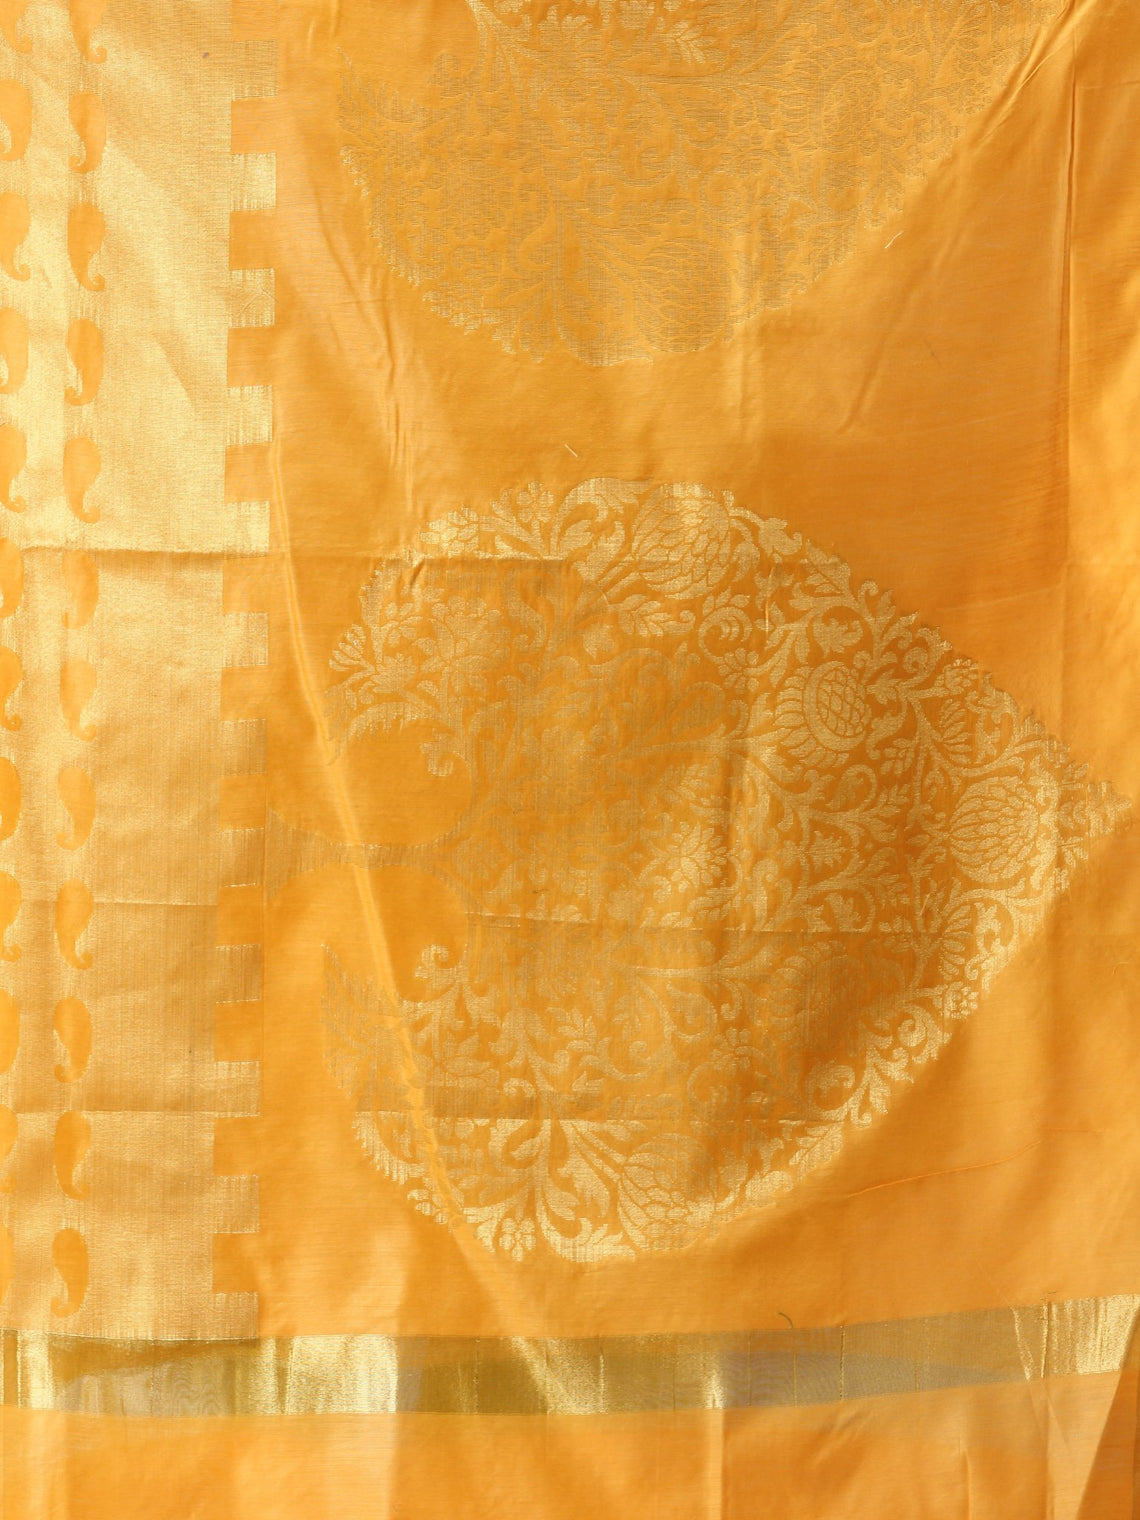 Banarasi Chanderi Dupatta With Resham Work - Yellow & Gold - D04170813